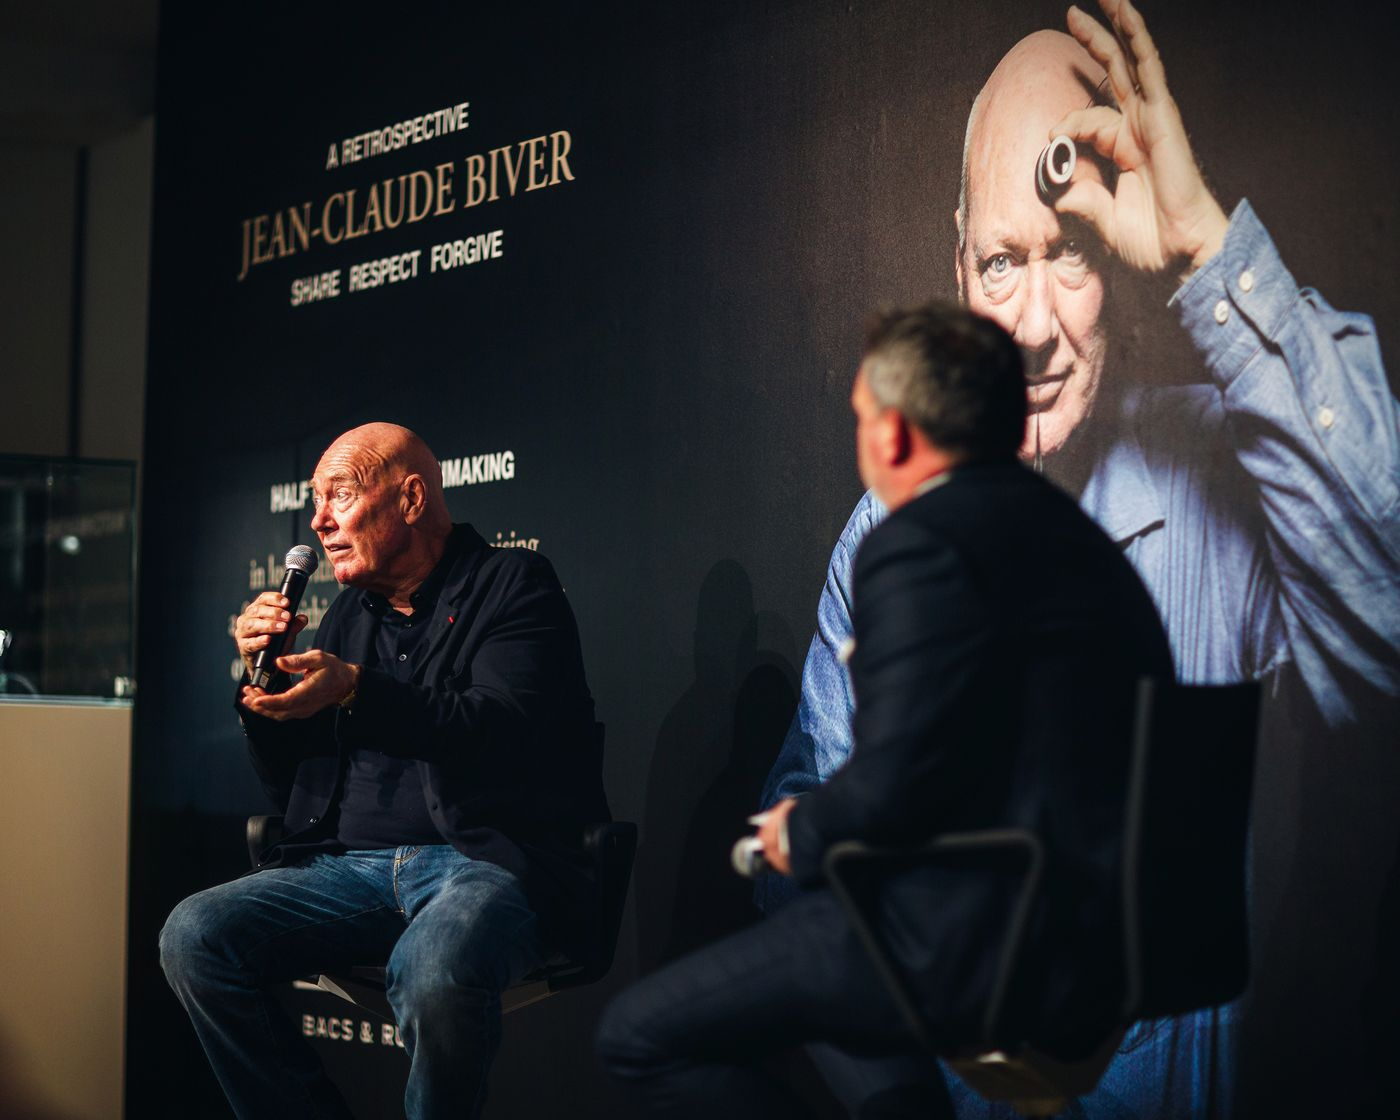 Jean-Claude Biver delivered lessons in life, business and watch collecting, during an impassioned panel discussion held in London in which he announced the consignment of four extraordinary Patek Philippe watches from his private collection.